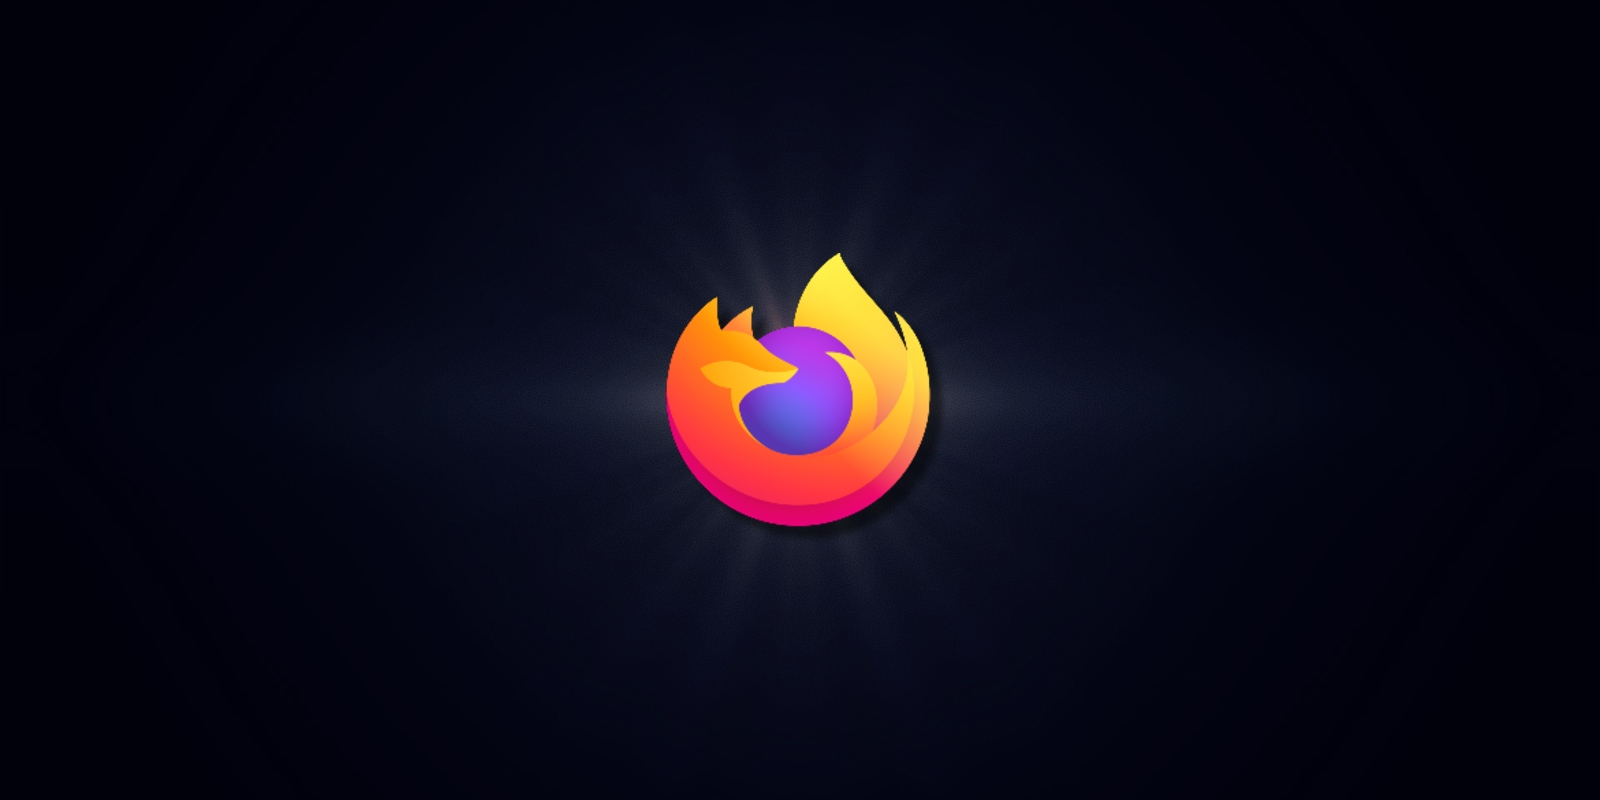 Firefox 84 dramatically boosts performance on Apple Silicon Macs